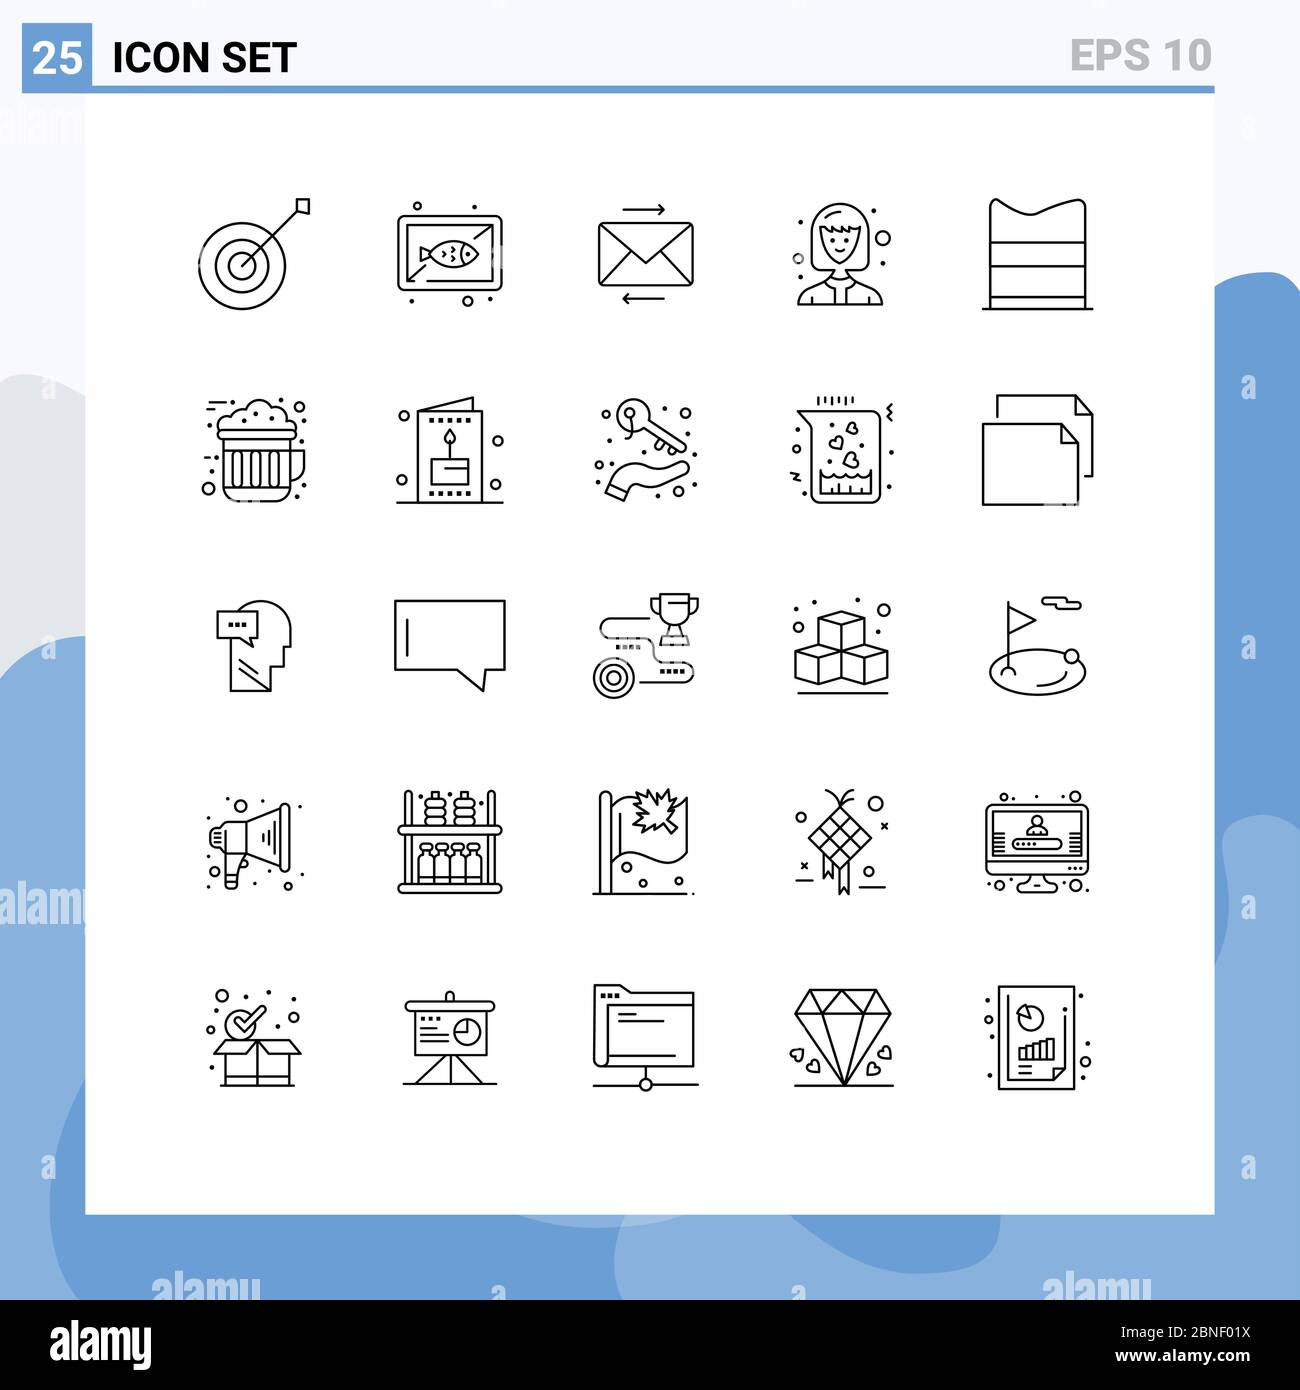 Universal Icon Symbols Group Of 25 Modern Lines Of Fashion Clothing Cook Student Avatar Editable Vector Design Elements Stock Vector Image Art Alamy